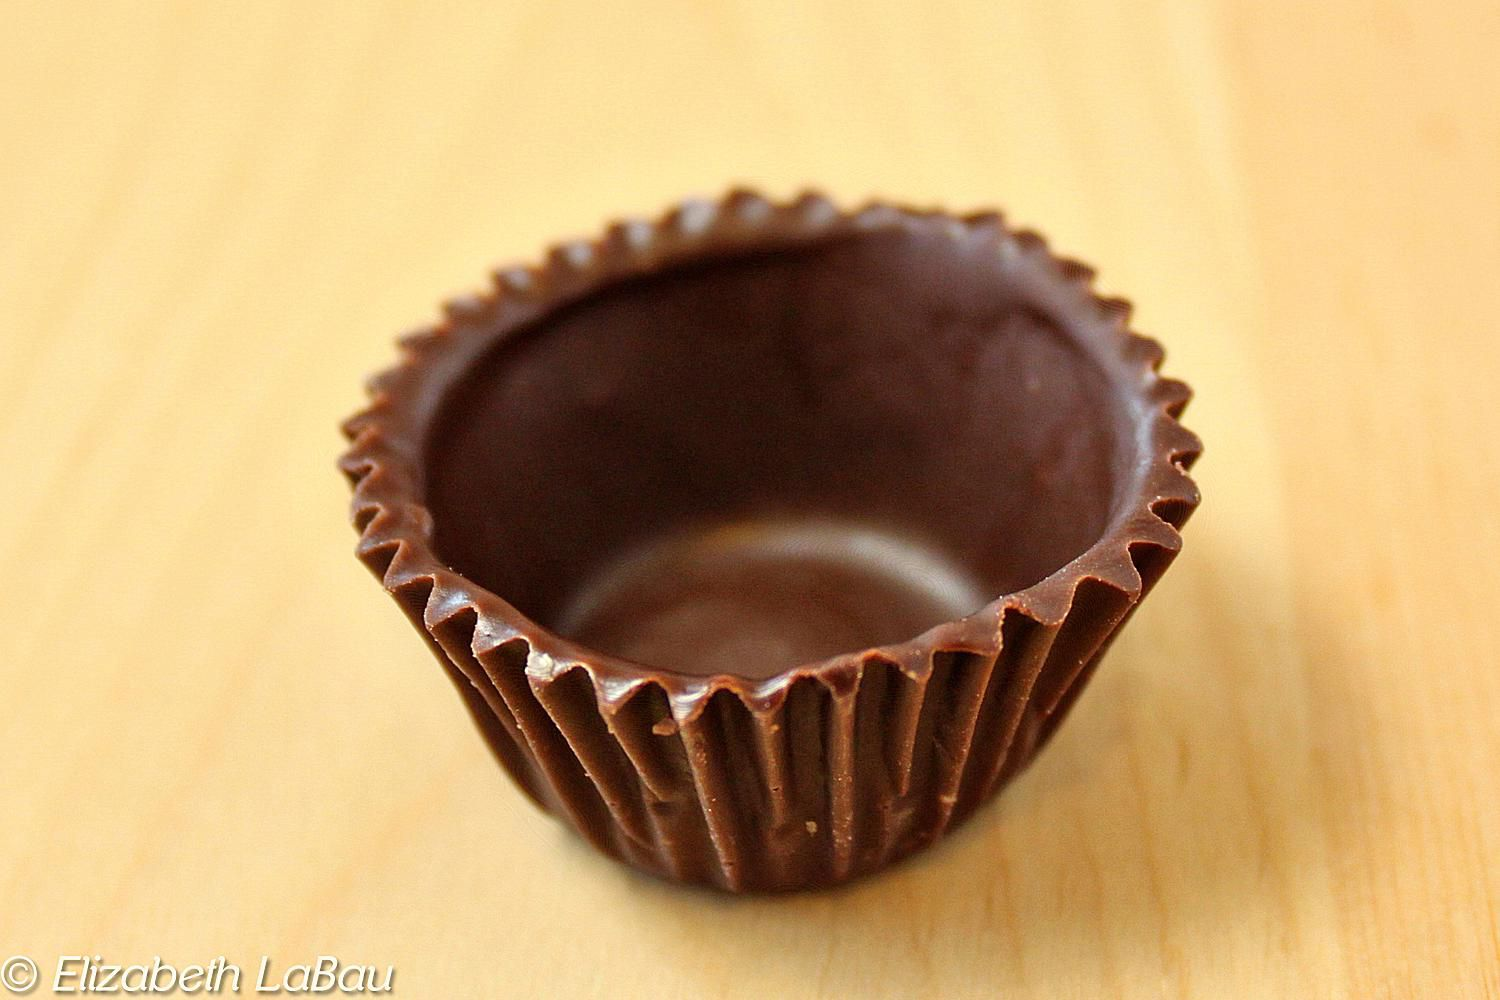 How To Make Chocolate Cups At Home